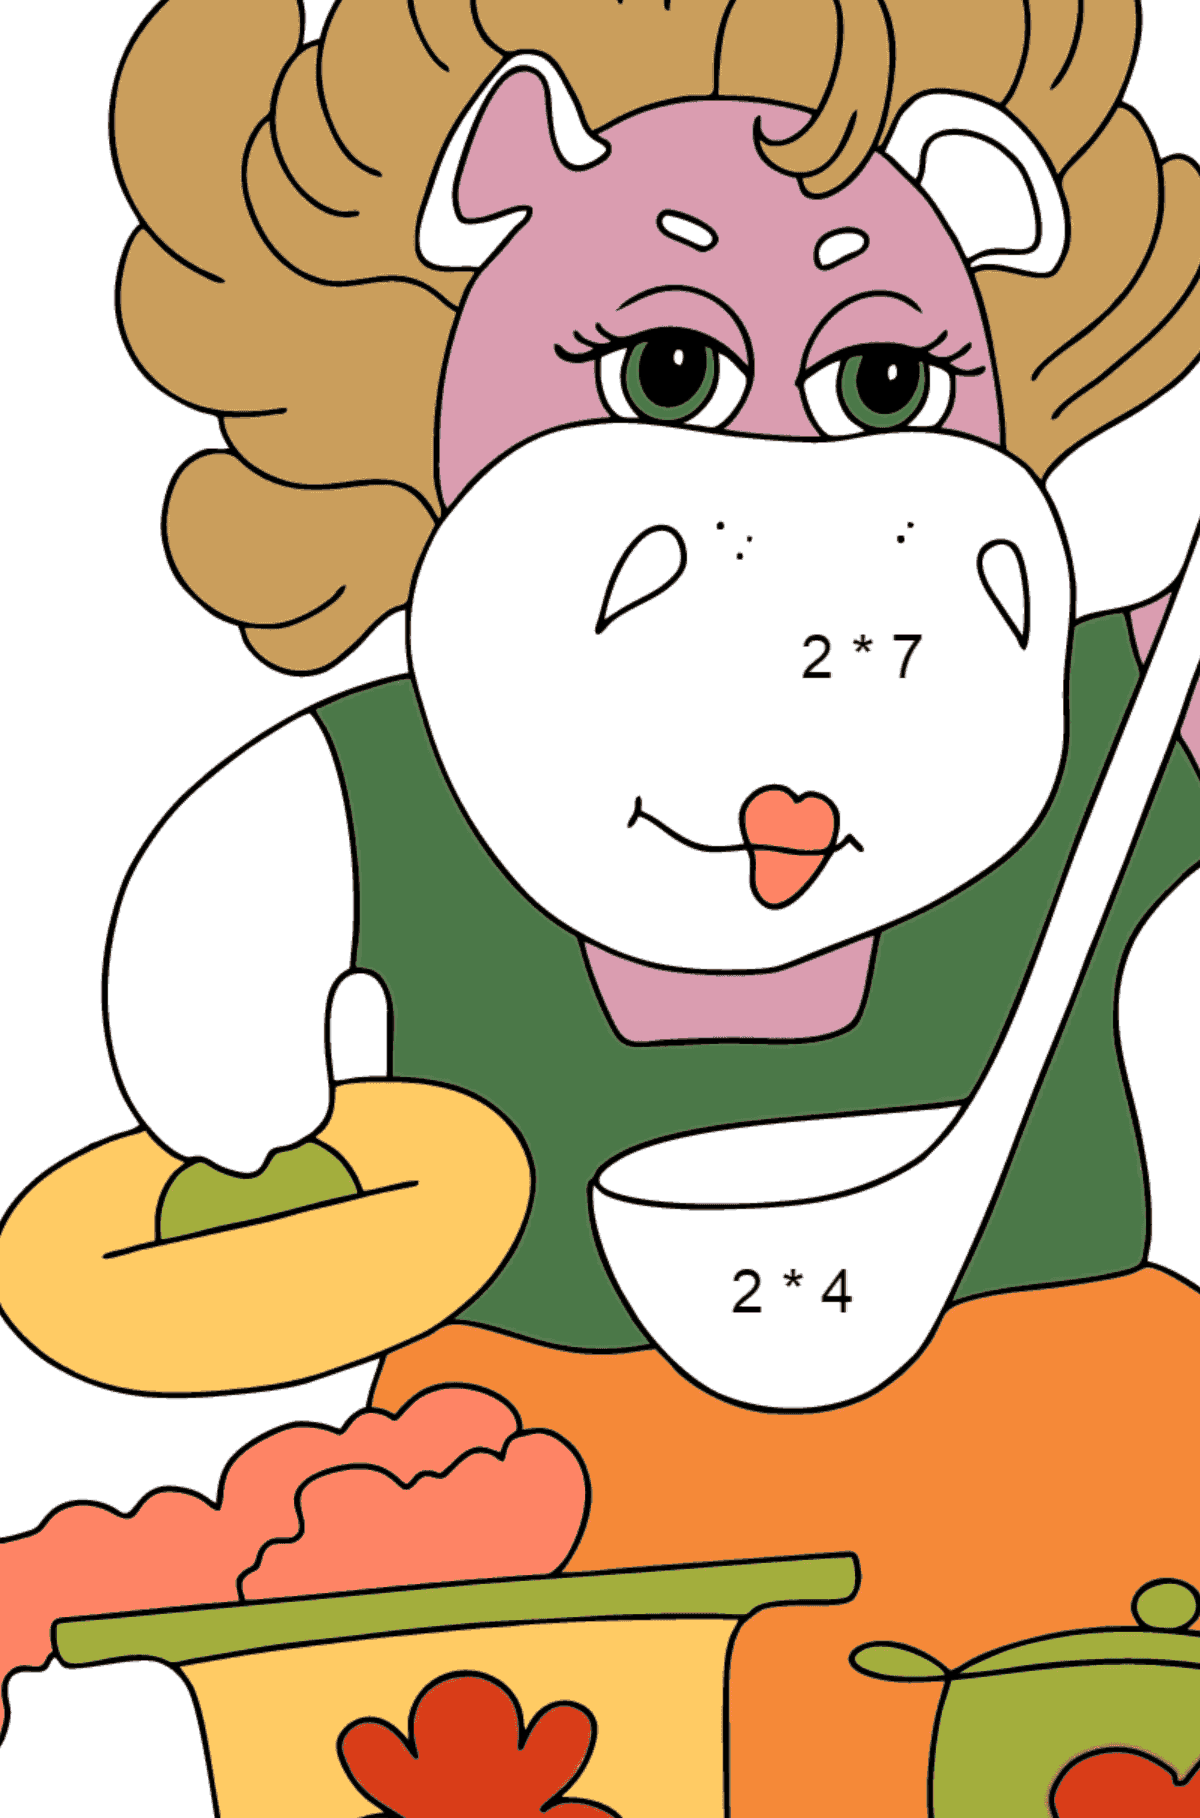 Coloring Page - A Hippo is Cooking Tasty Soup for Children  - Color by Number Multiplication